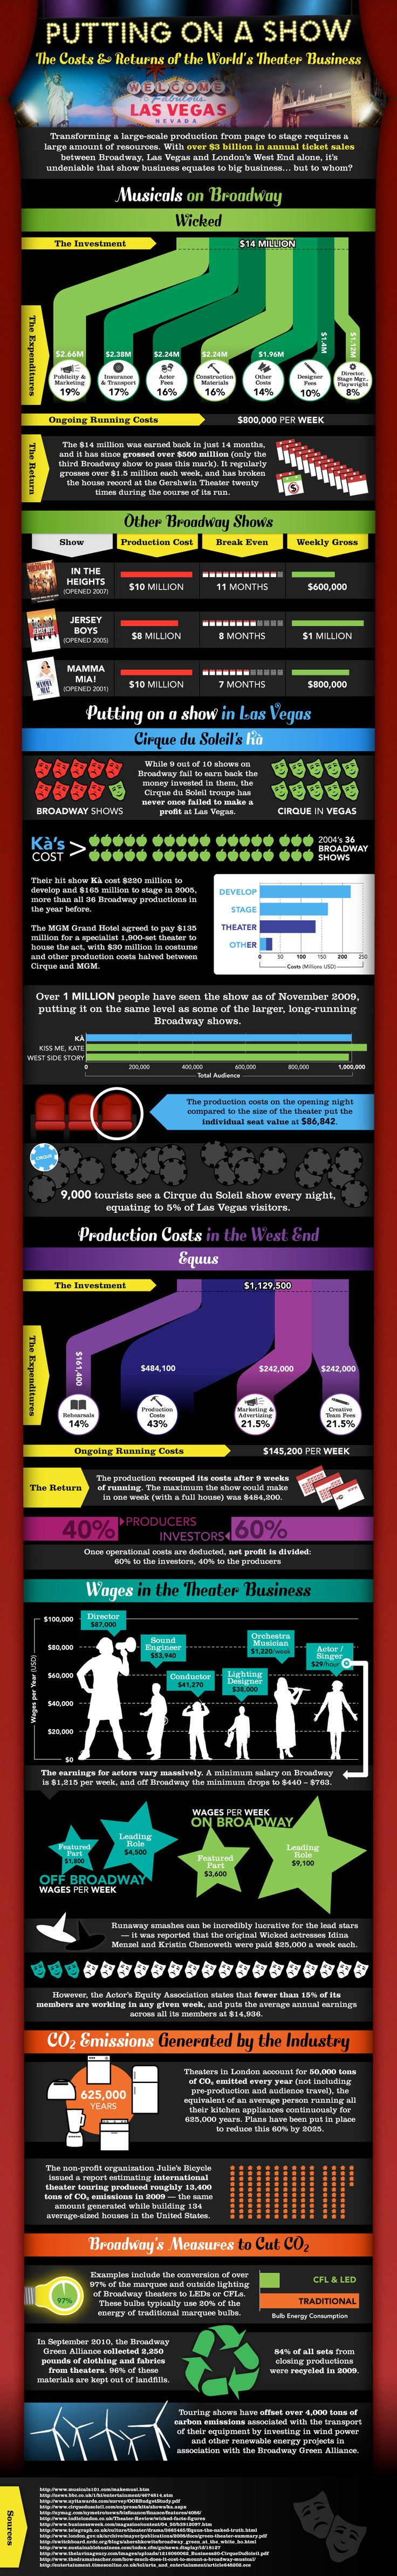 Putting On A Show: The Costs And Returns Of The World's Theater Business